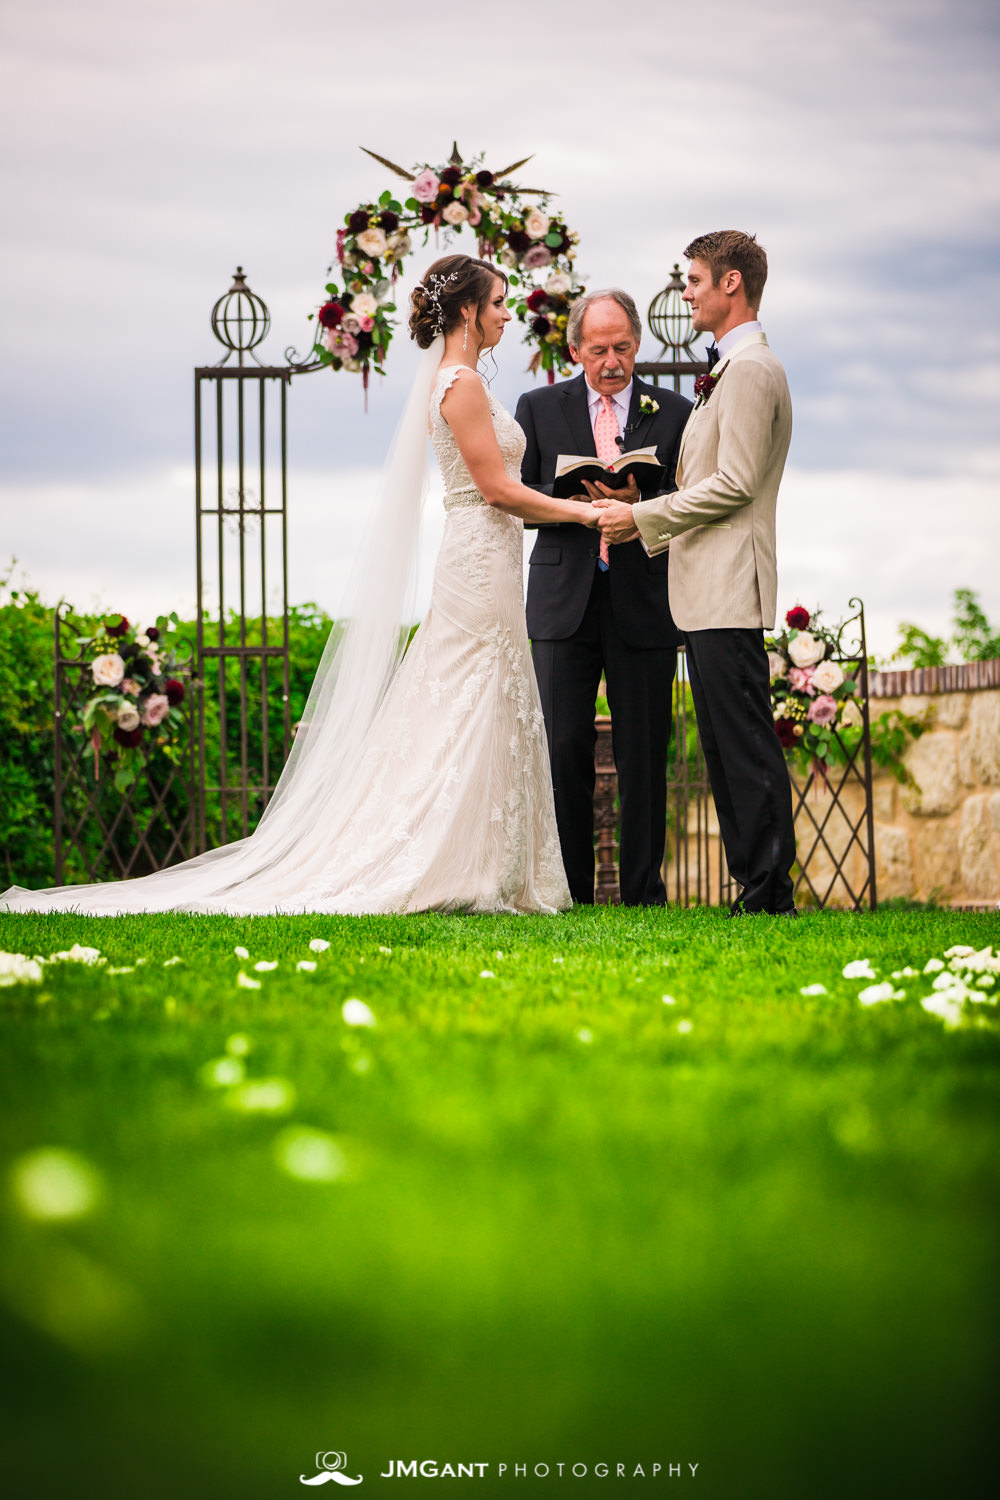 Denver Colorado Wedding | Wedding ceremony | Colorado wedding photographer | © JMGant Photography | http://www.jmgantphotography.com/